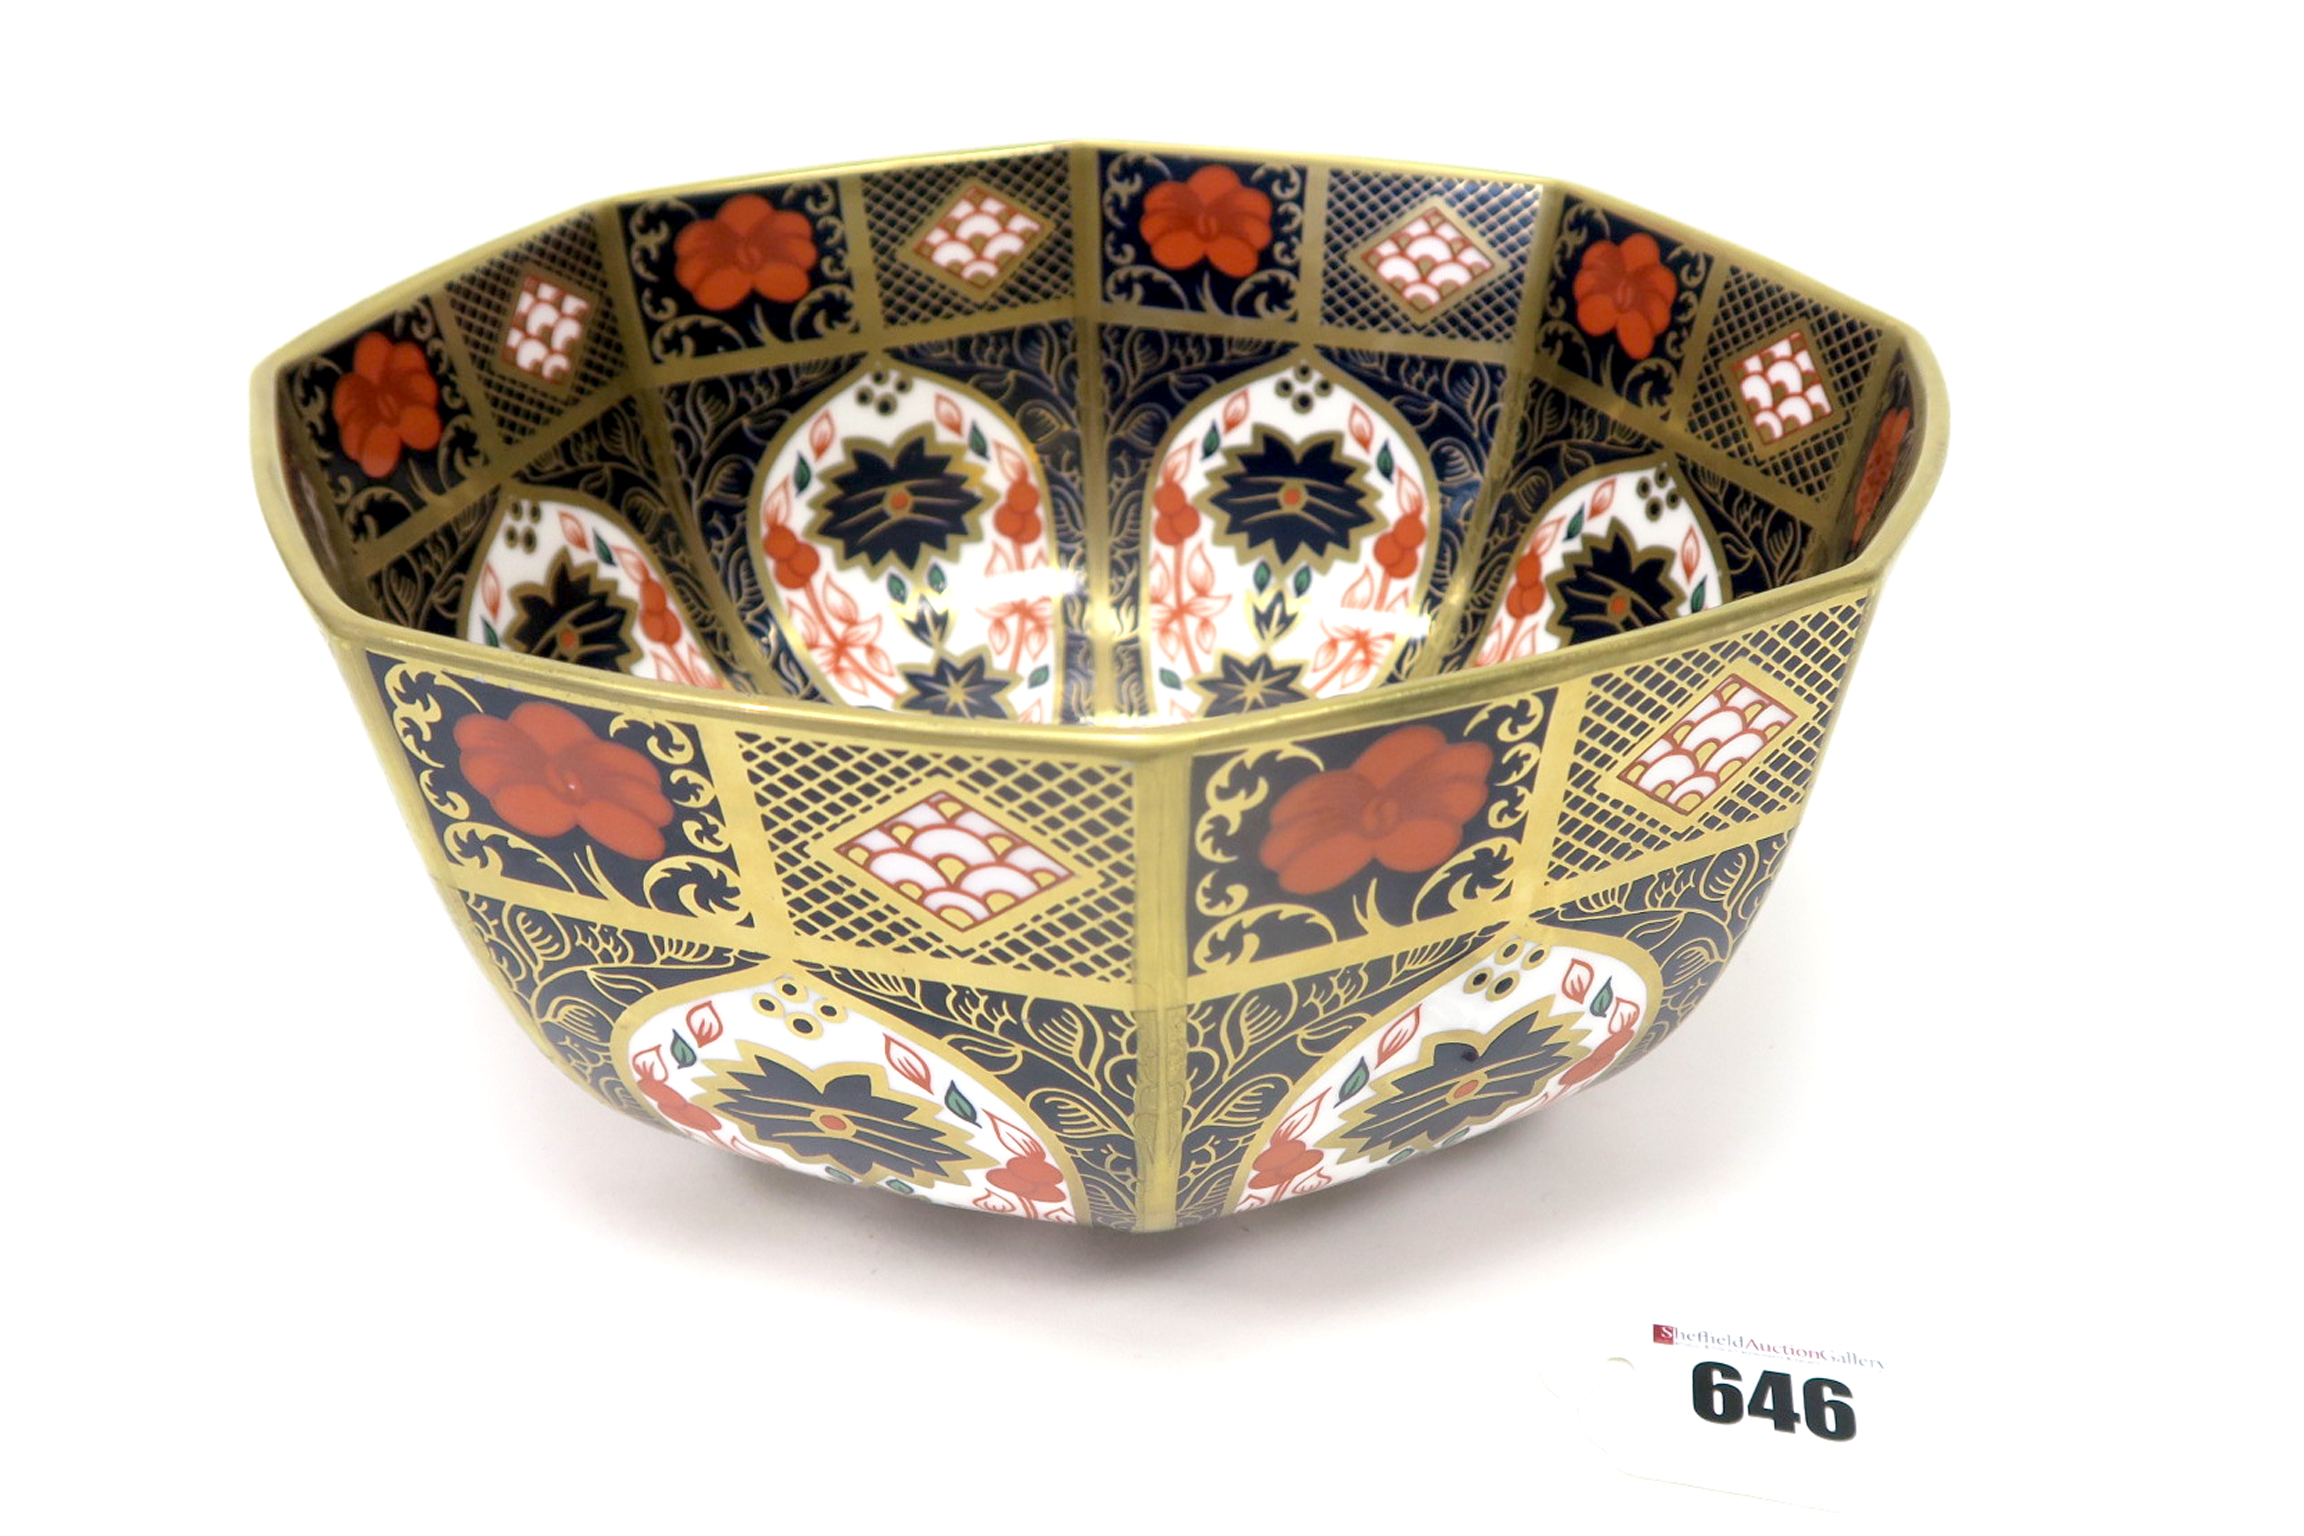 Lot 646 - A Royal Crown Derby Style Porcelain Bowl, of octagonal form, decorated in the Imari pattern 1128,